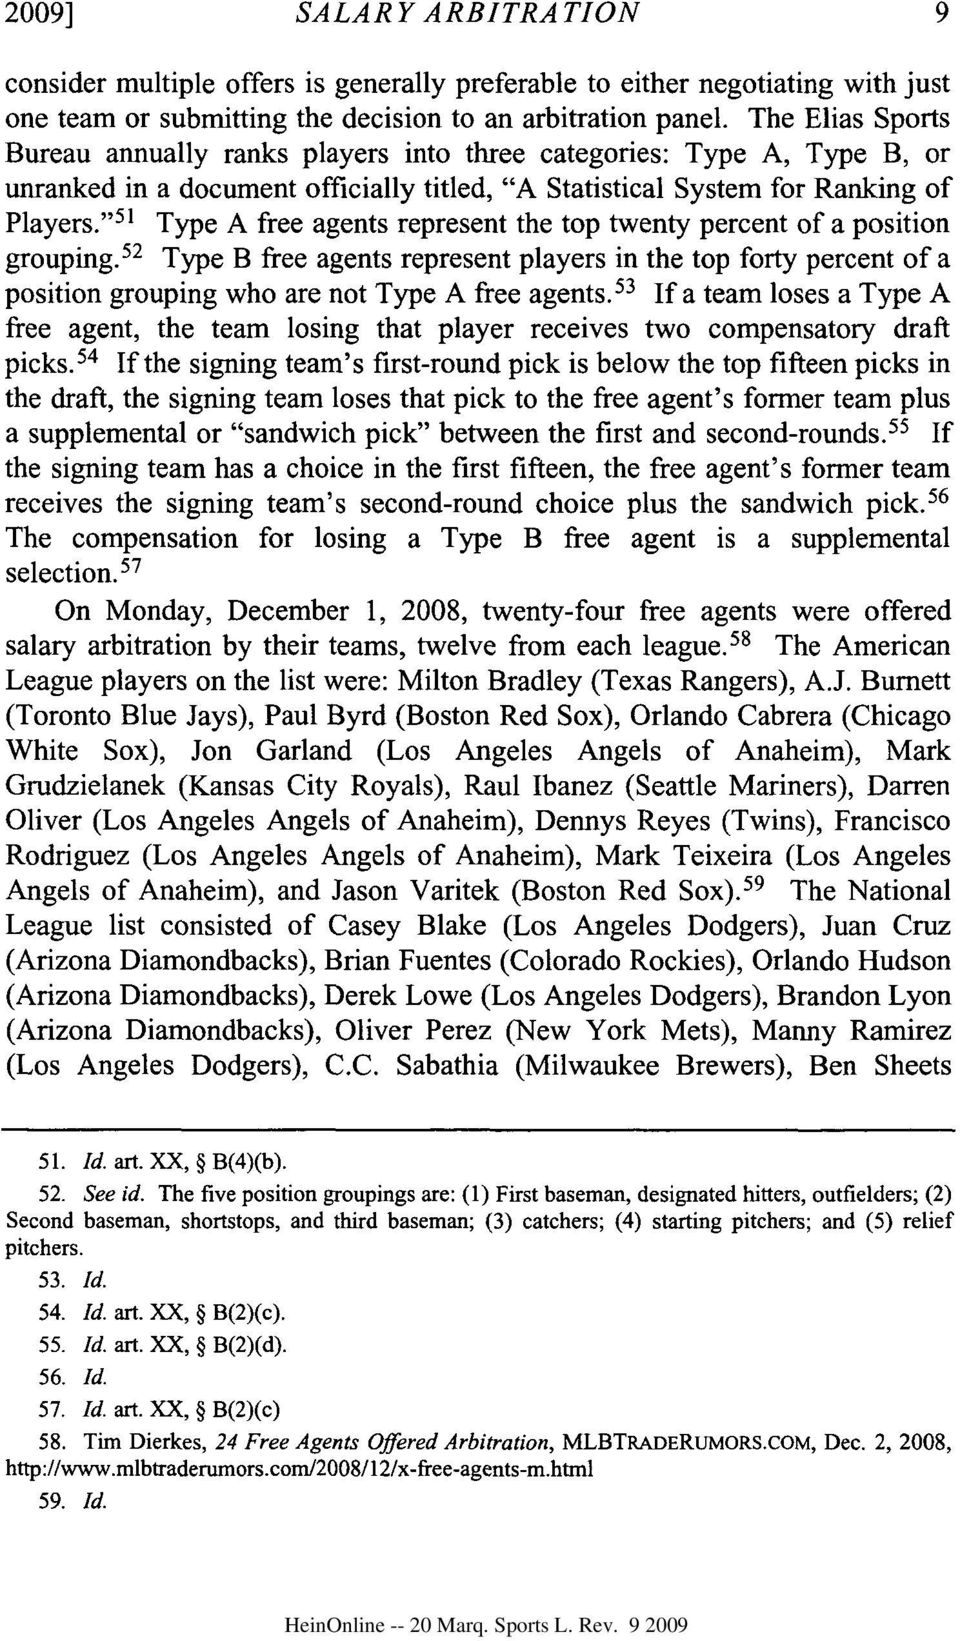 """ 51 Type A free agents represent the top twenty percent of a position grouping. 52 Type B free agents represent players in the top forty percent of a position grouping who are not Type A free agents."